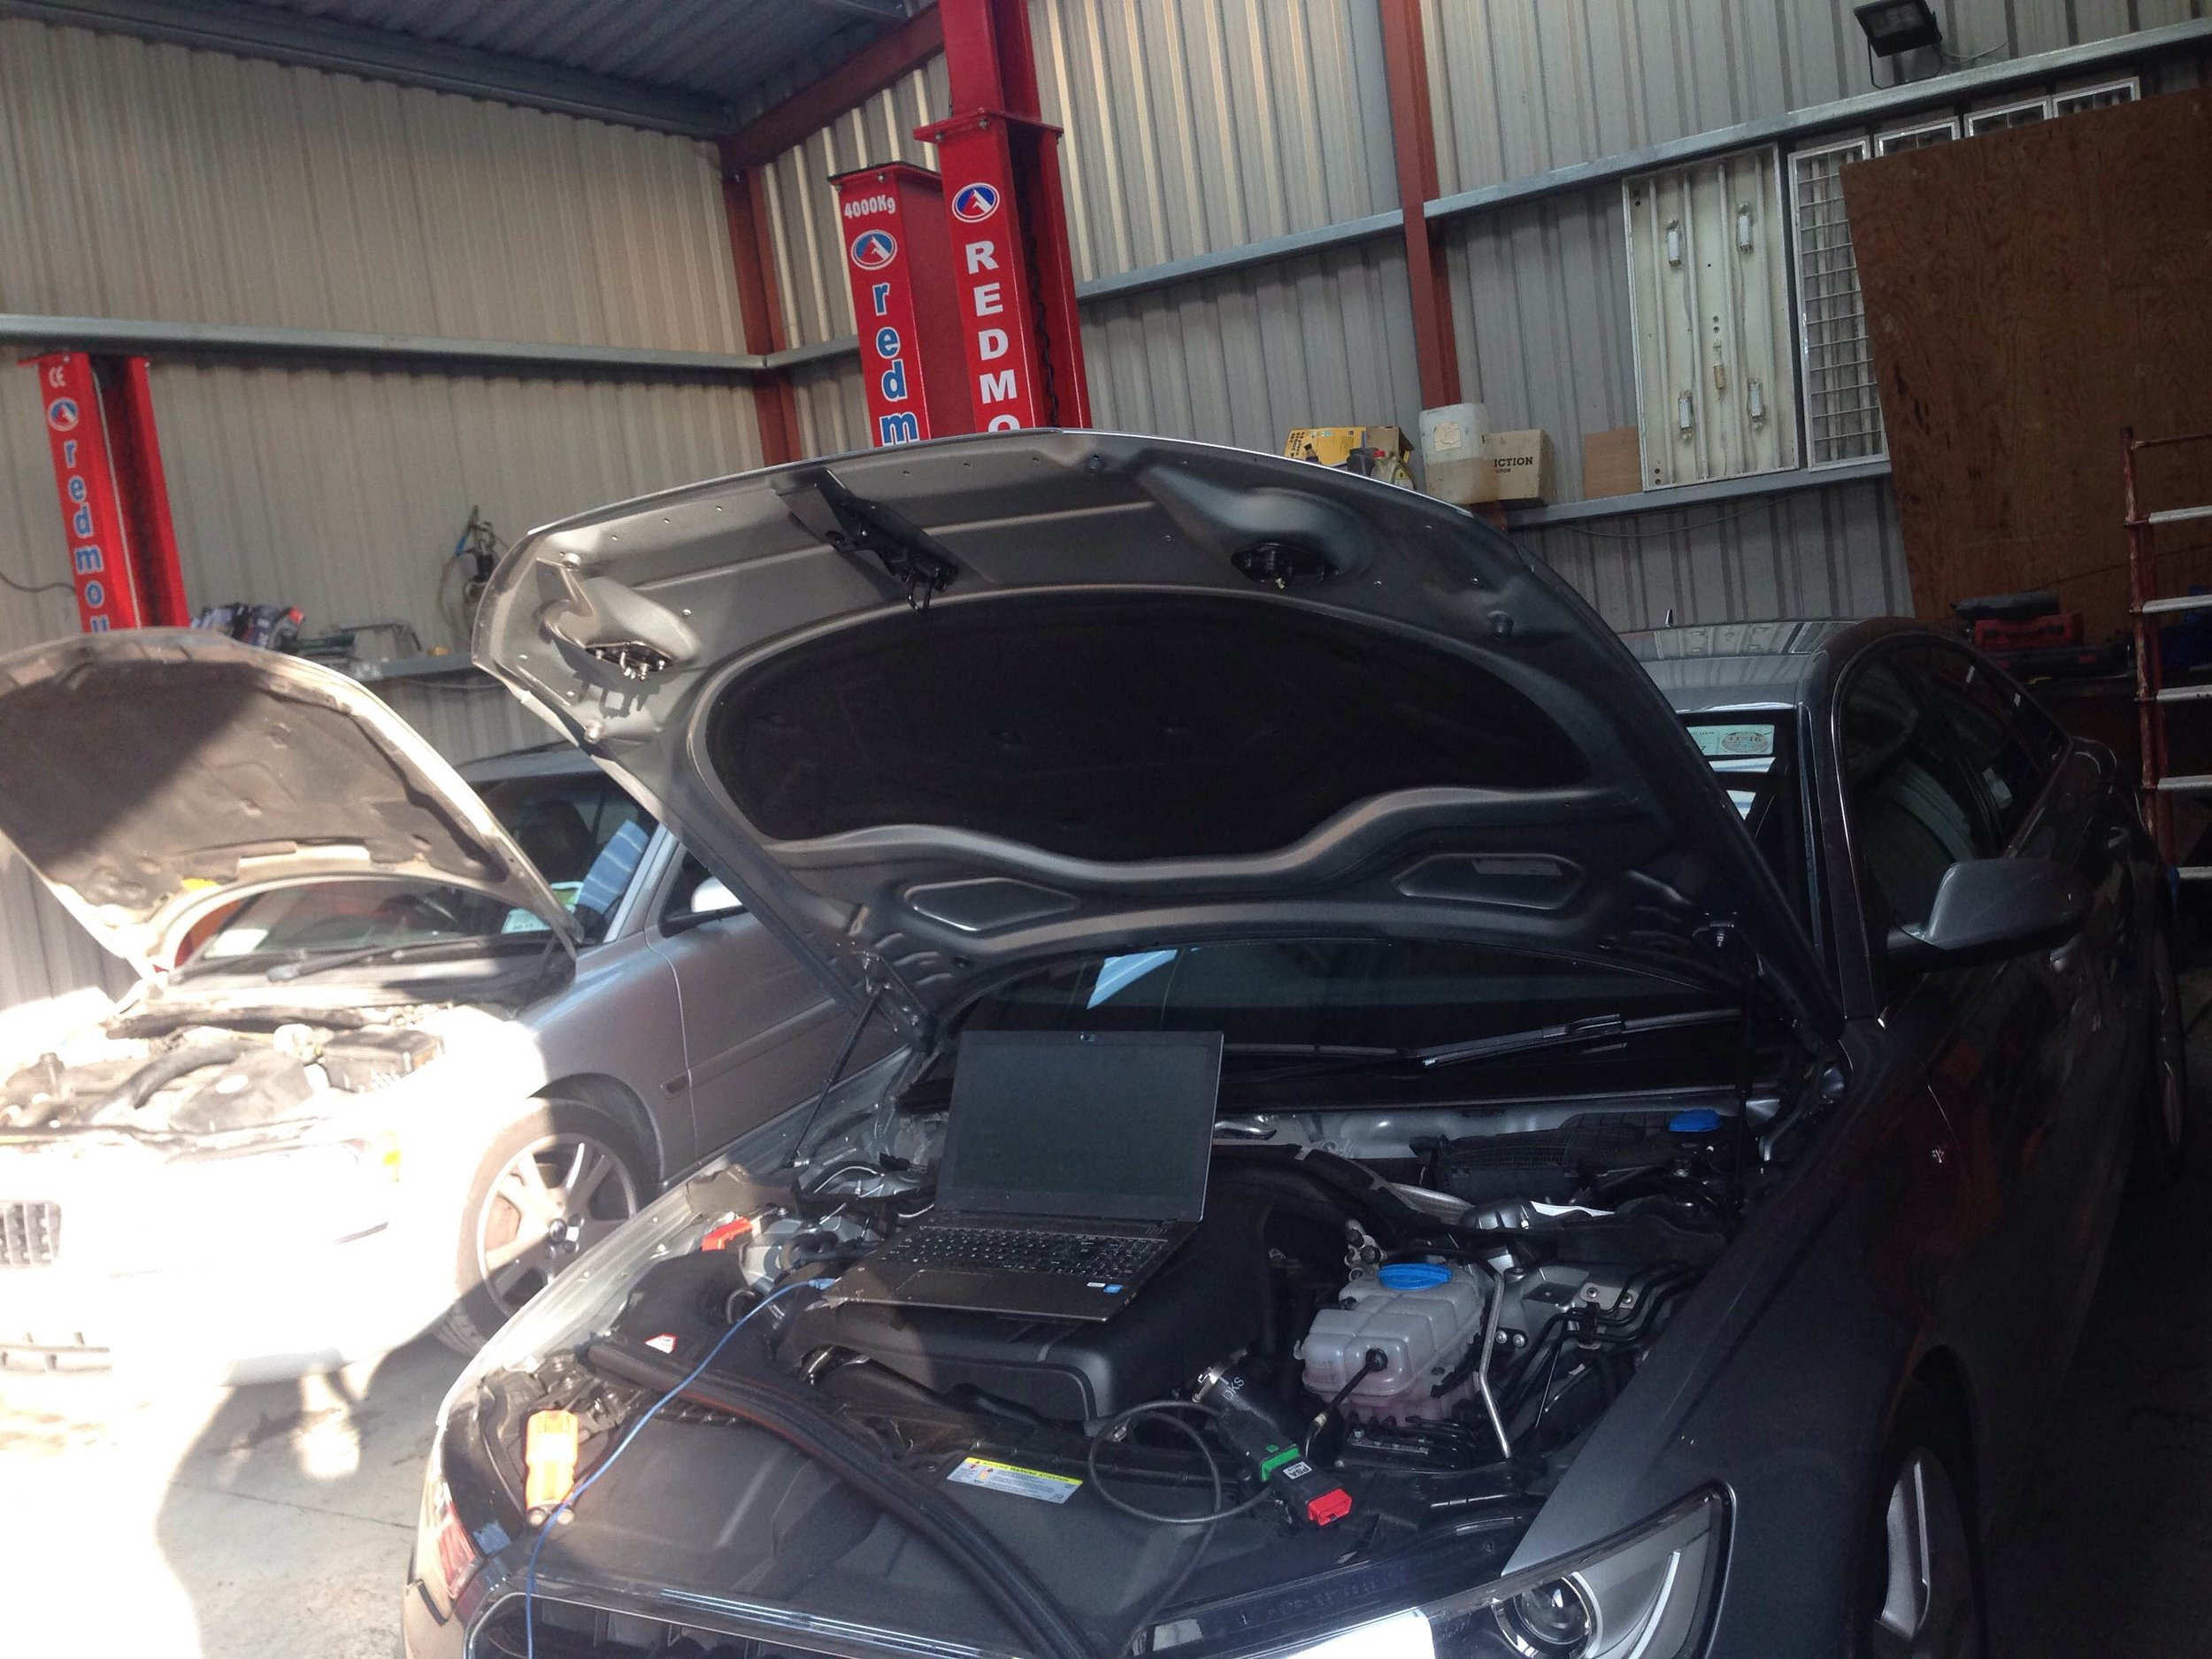 audi s line remapped 177.JPG